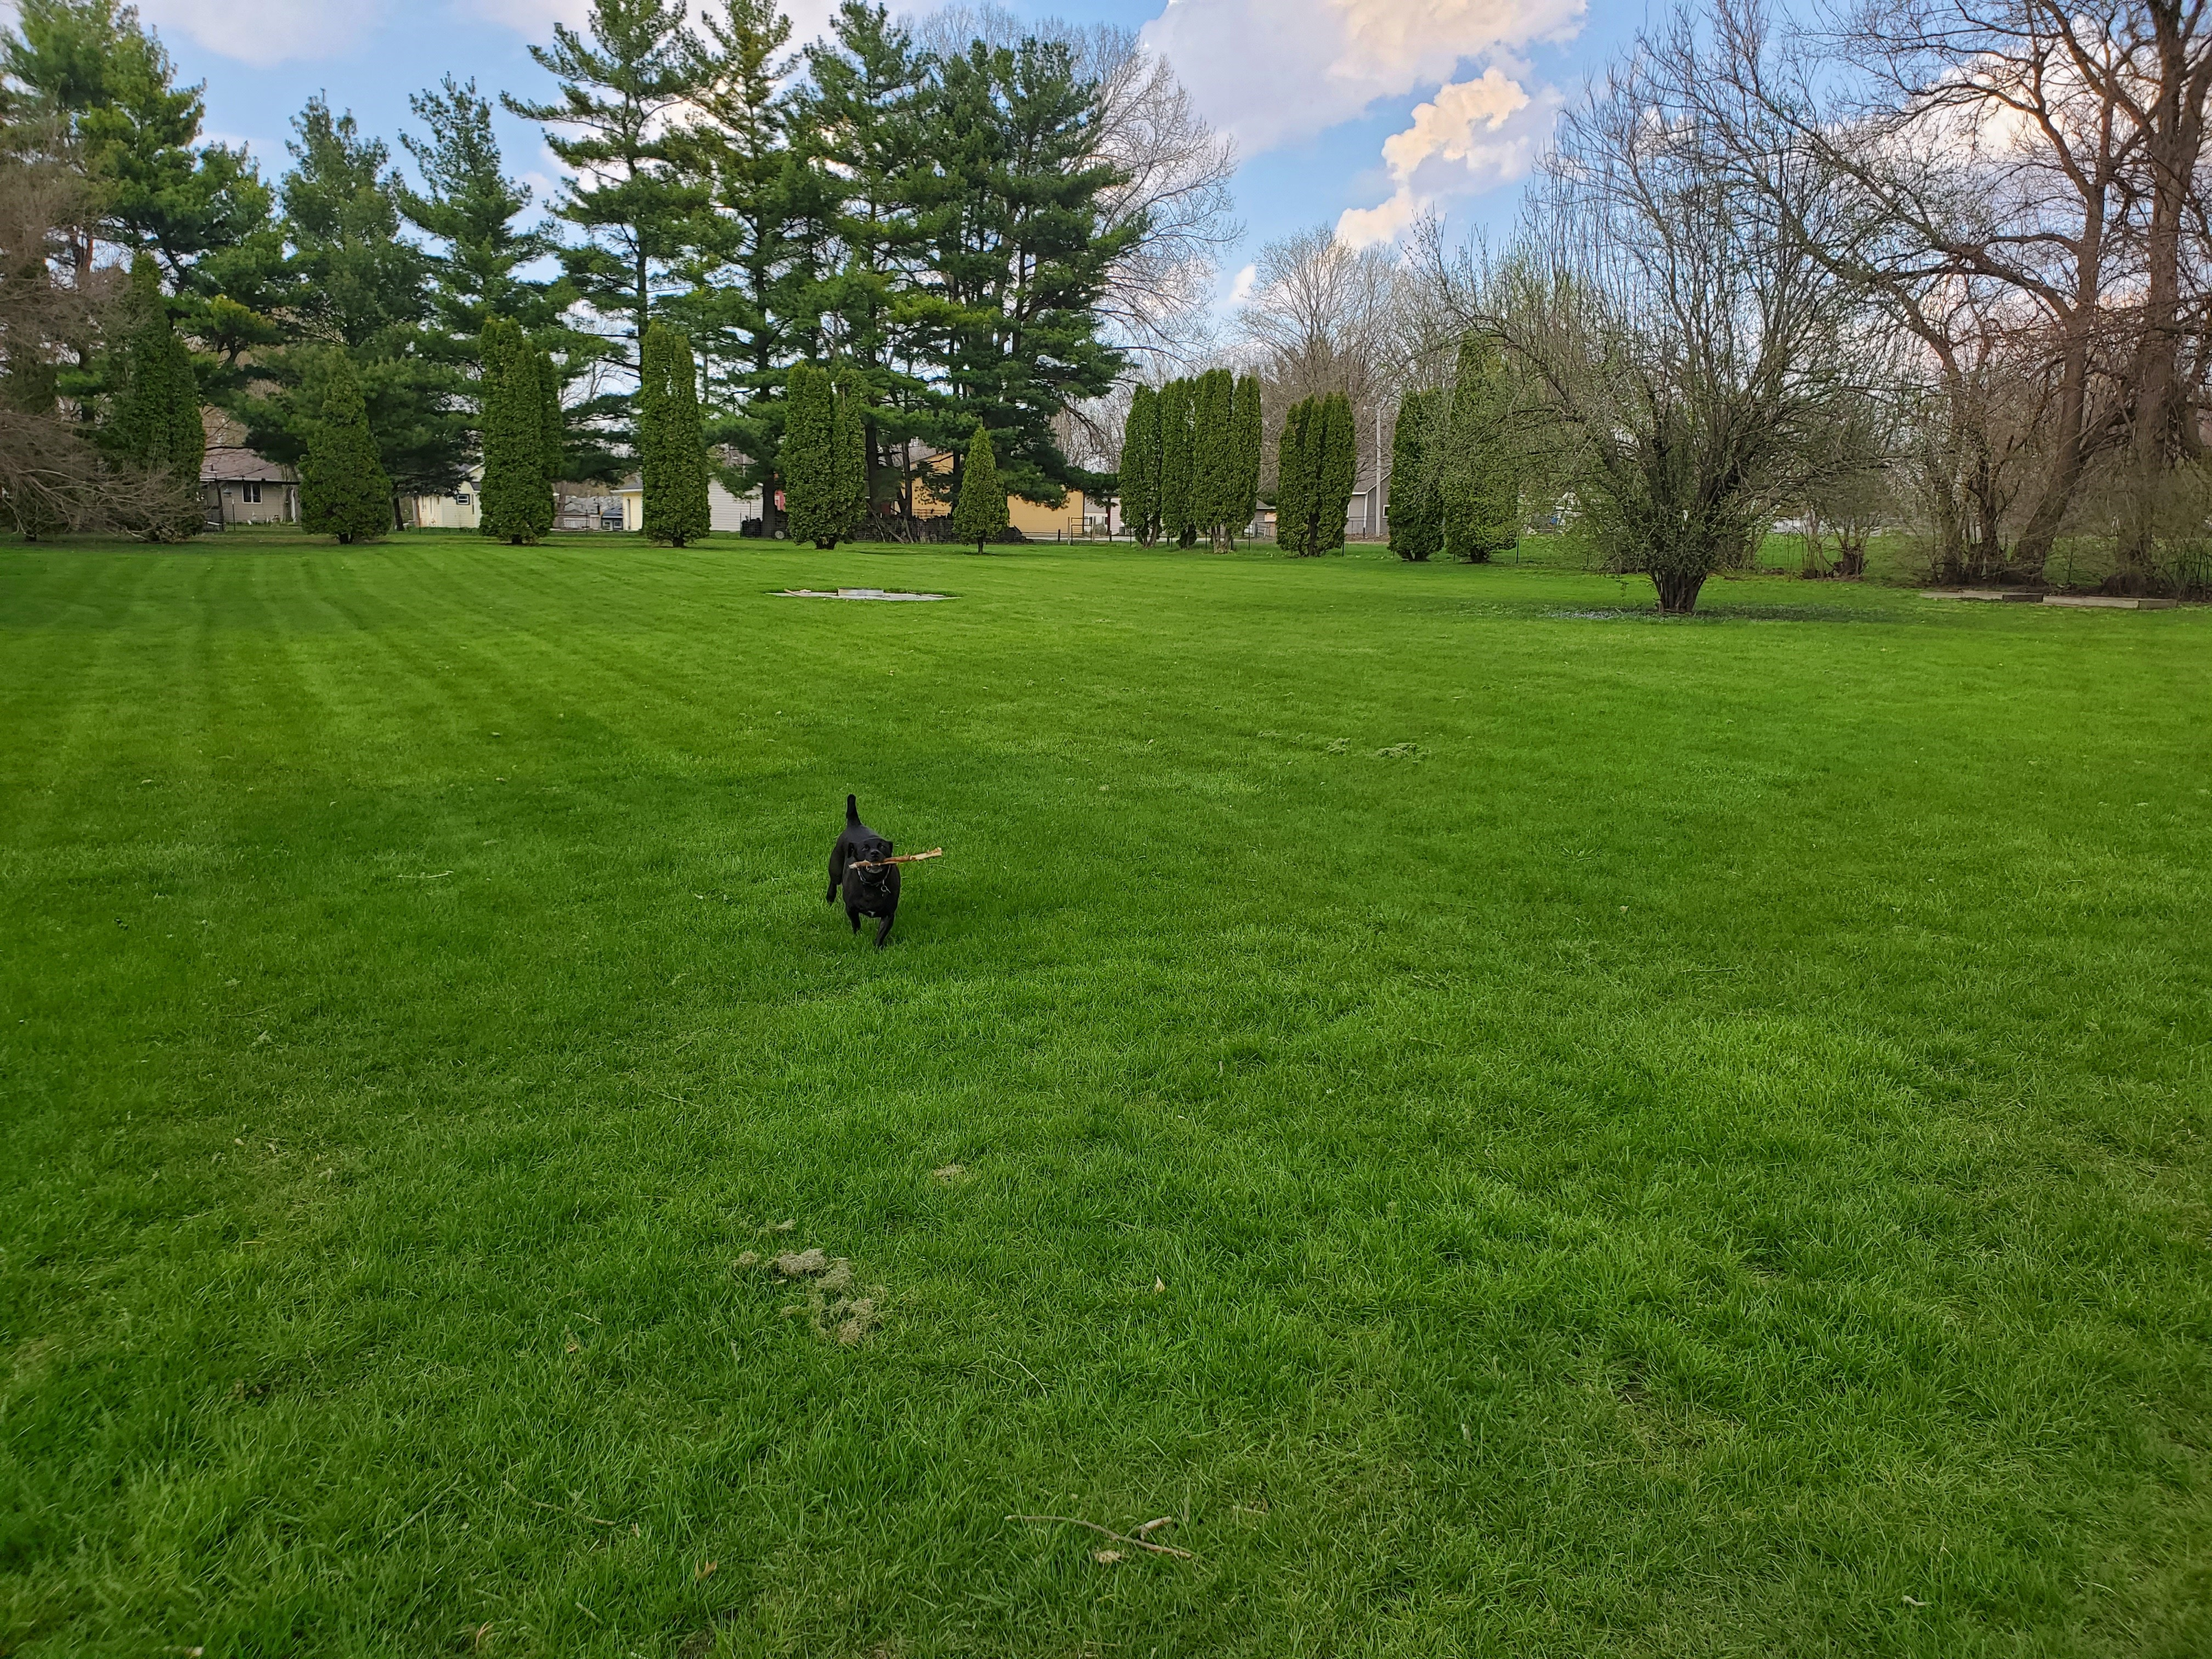 Little black dog on green lawn, trees in background, bringing back stick.